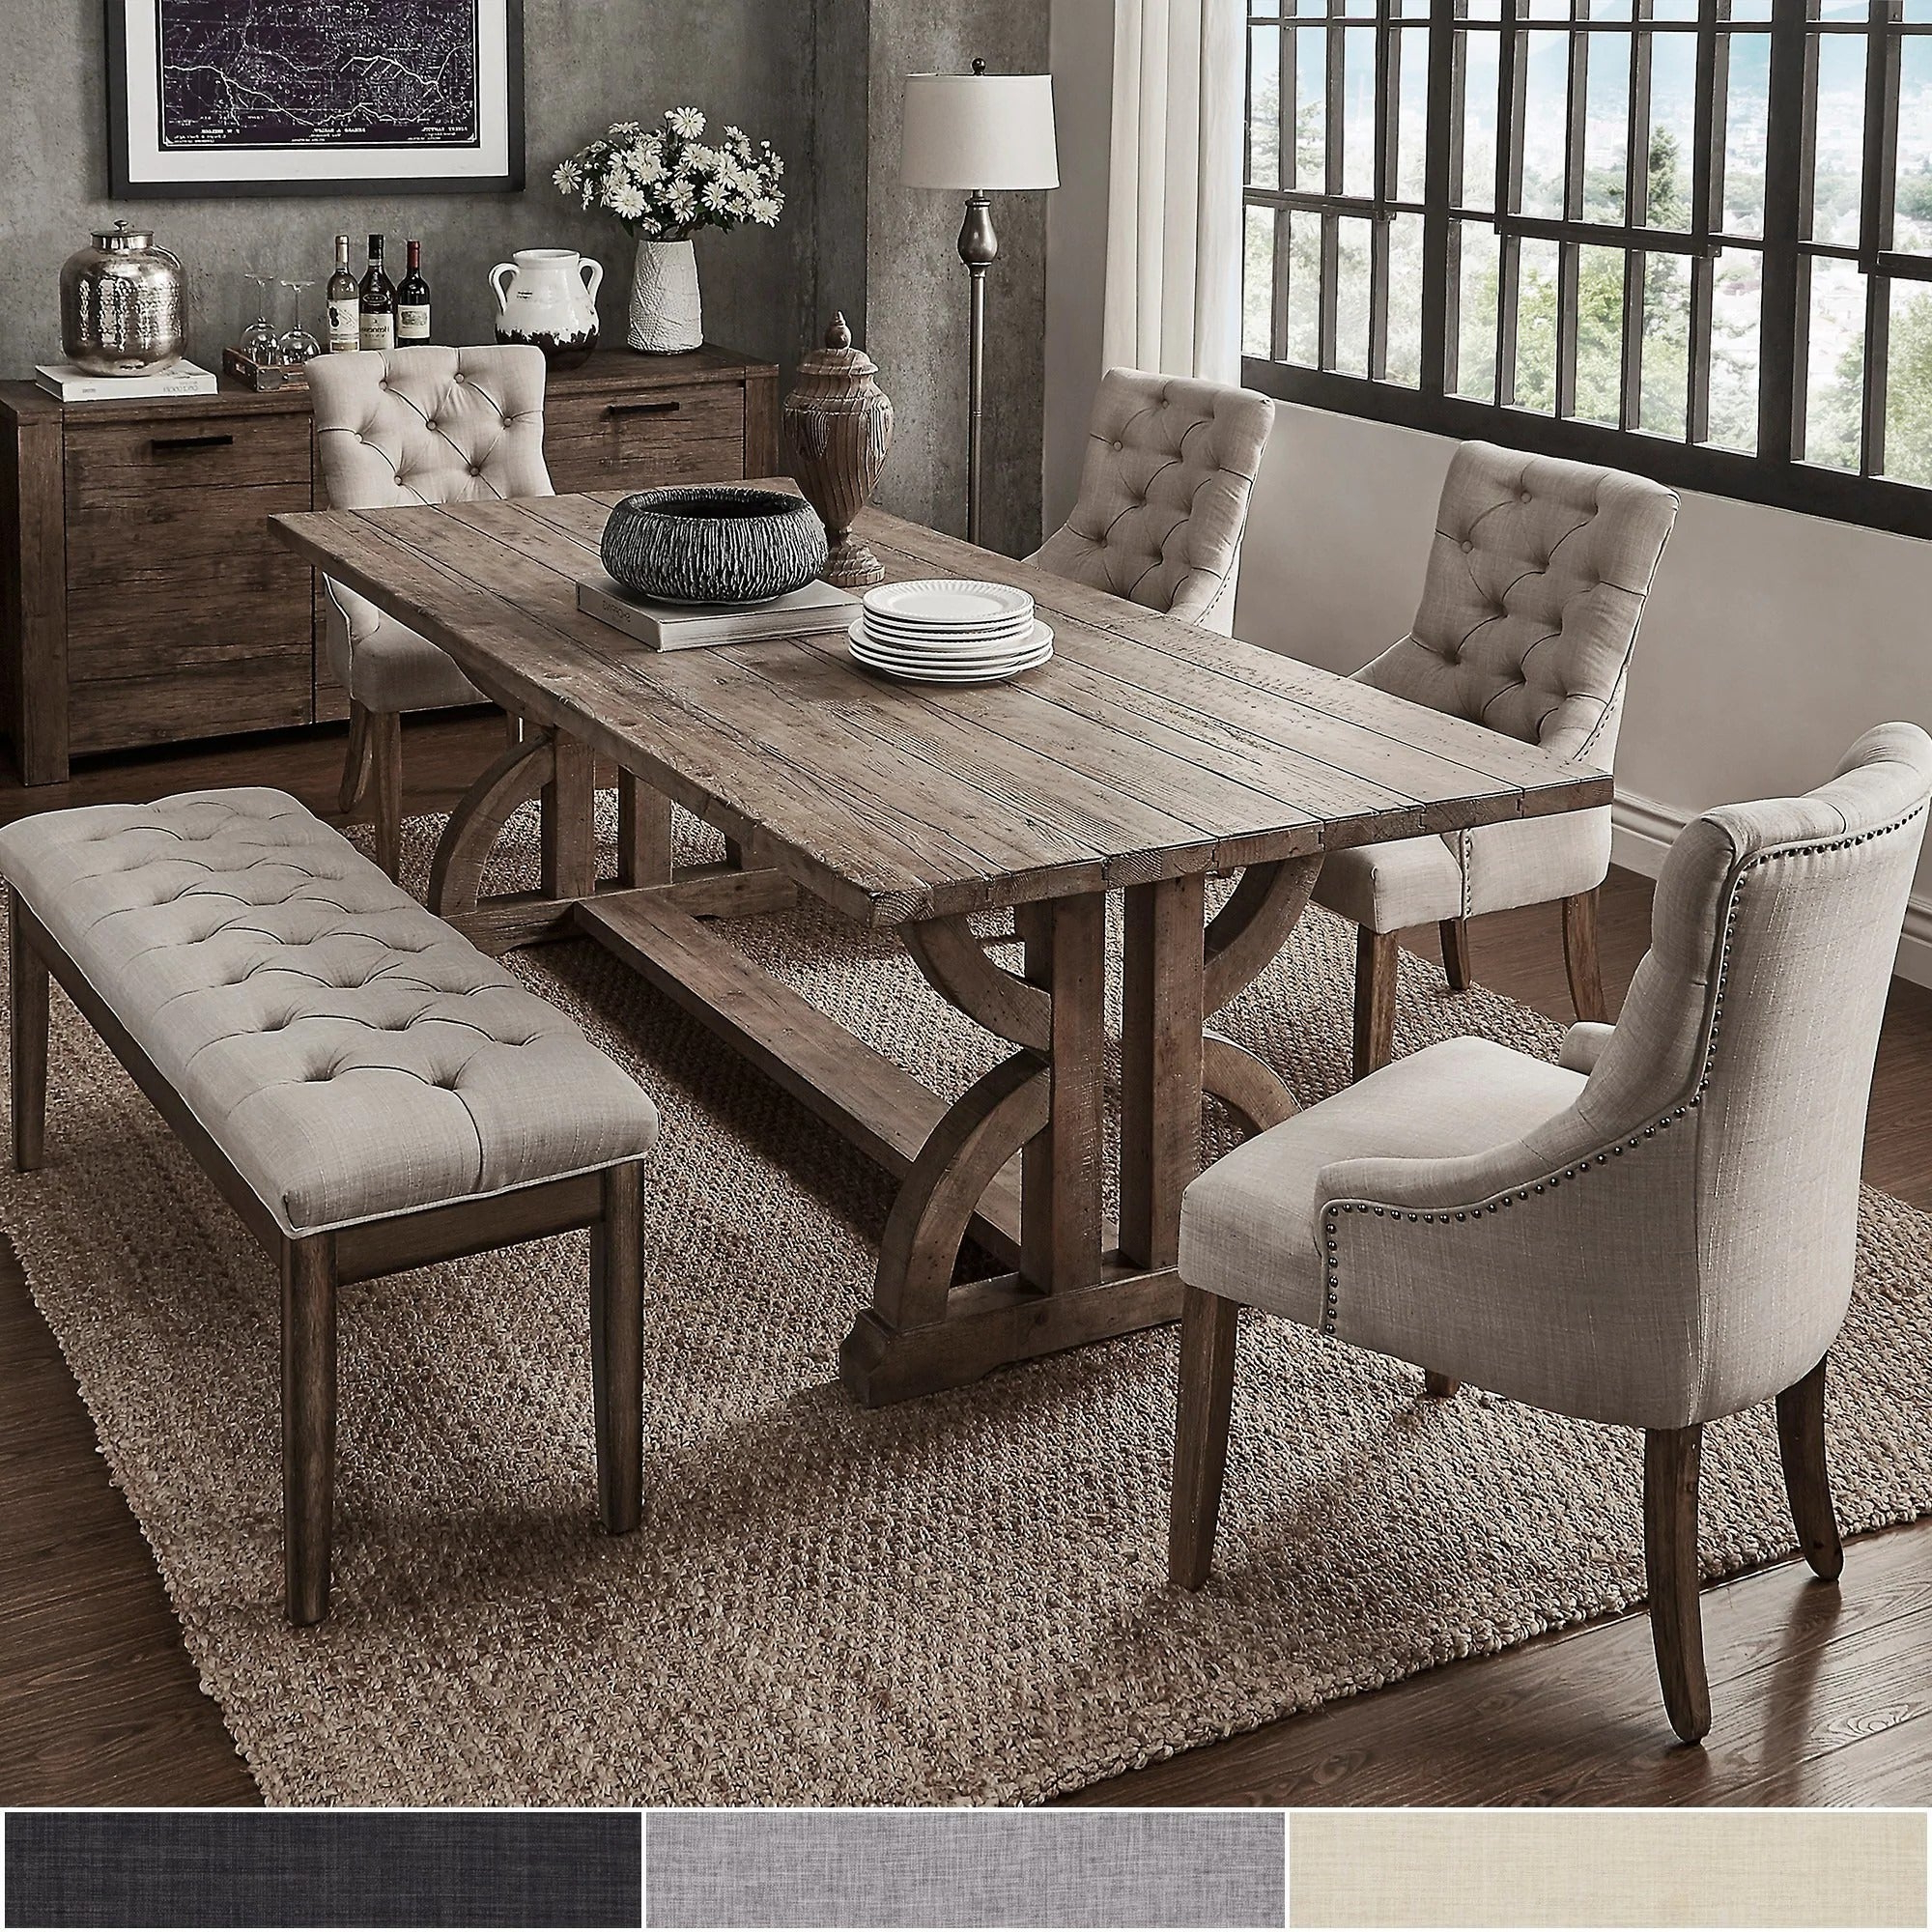 Most Recent Falmer 3 Piece Solid Wood Dining Sets Throughout Buy Farmhouse Kitchen & Dining Room Sets Online At Overstock (View 2 of 25)